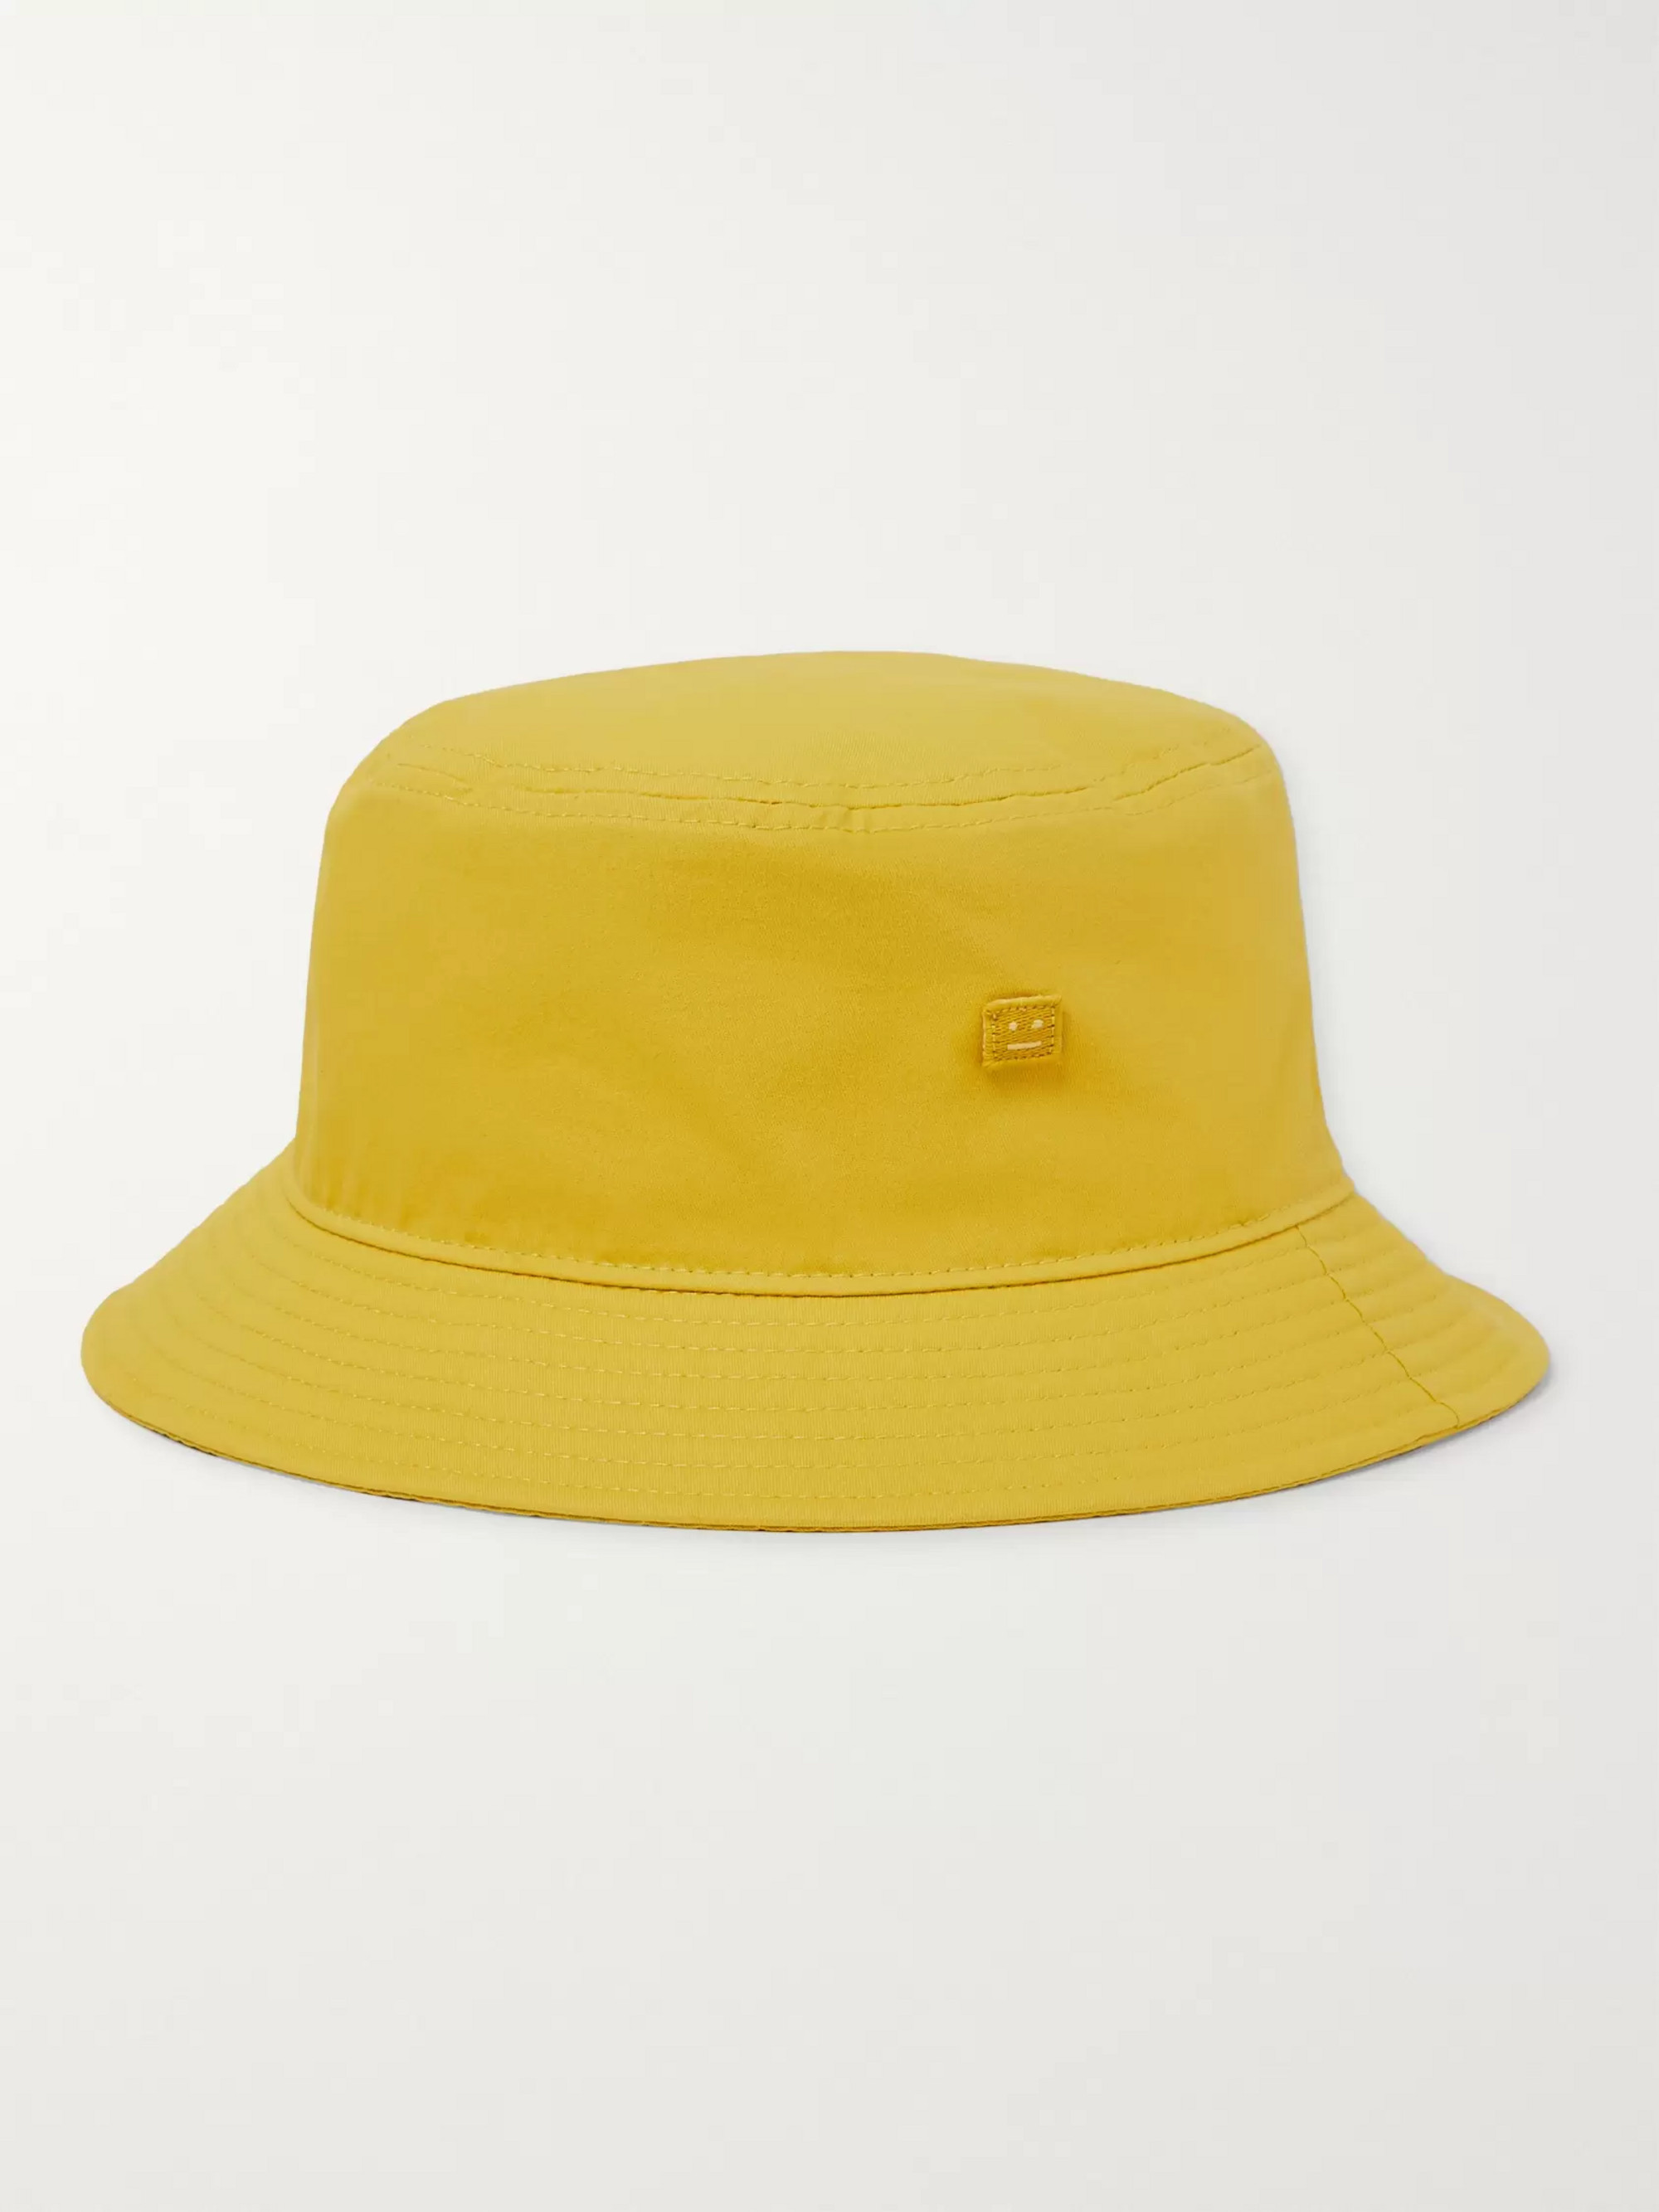 Acne Studios Logo-Appliquéd Cotton-Twill Bucket Hat